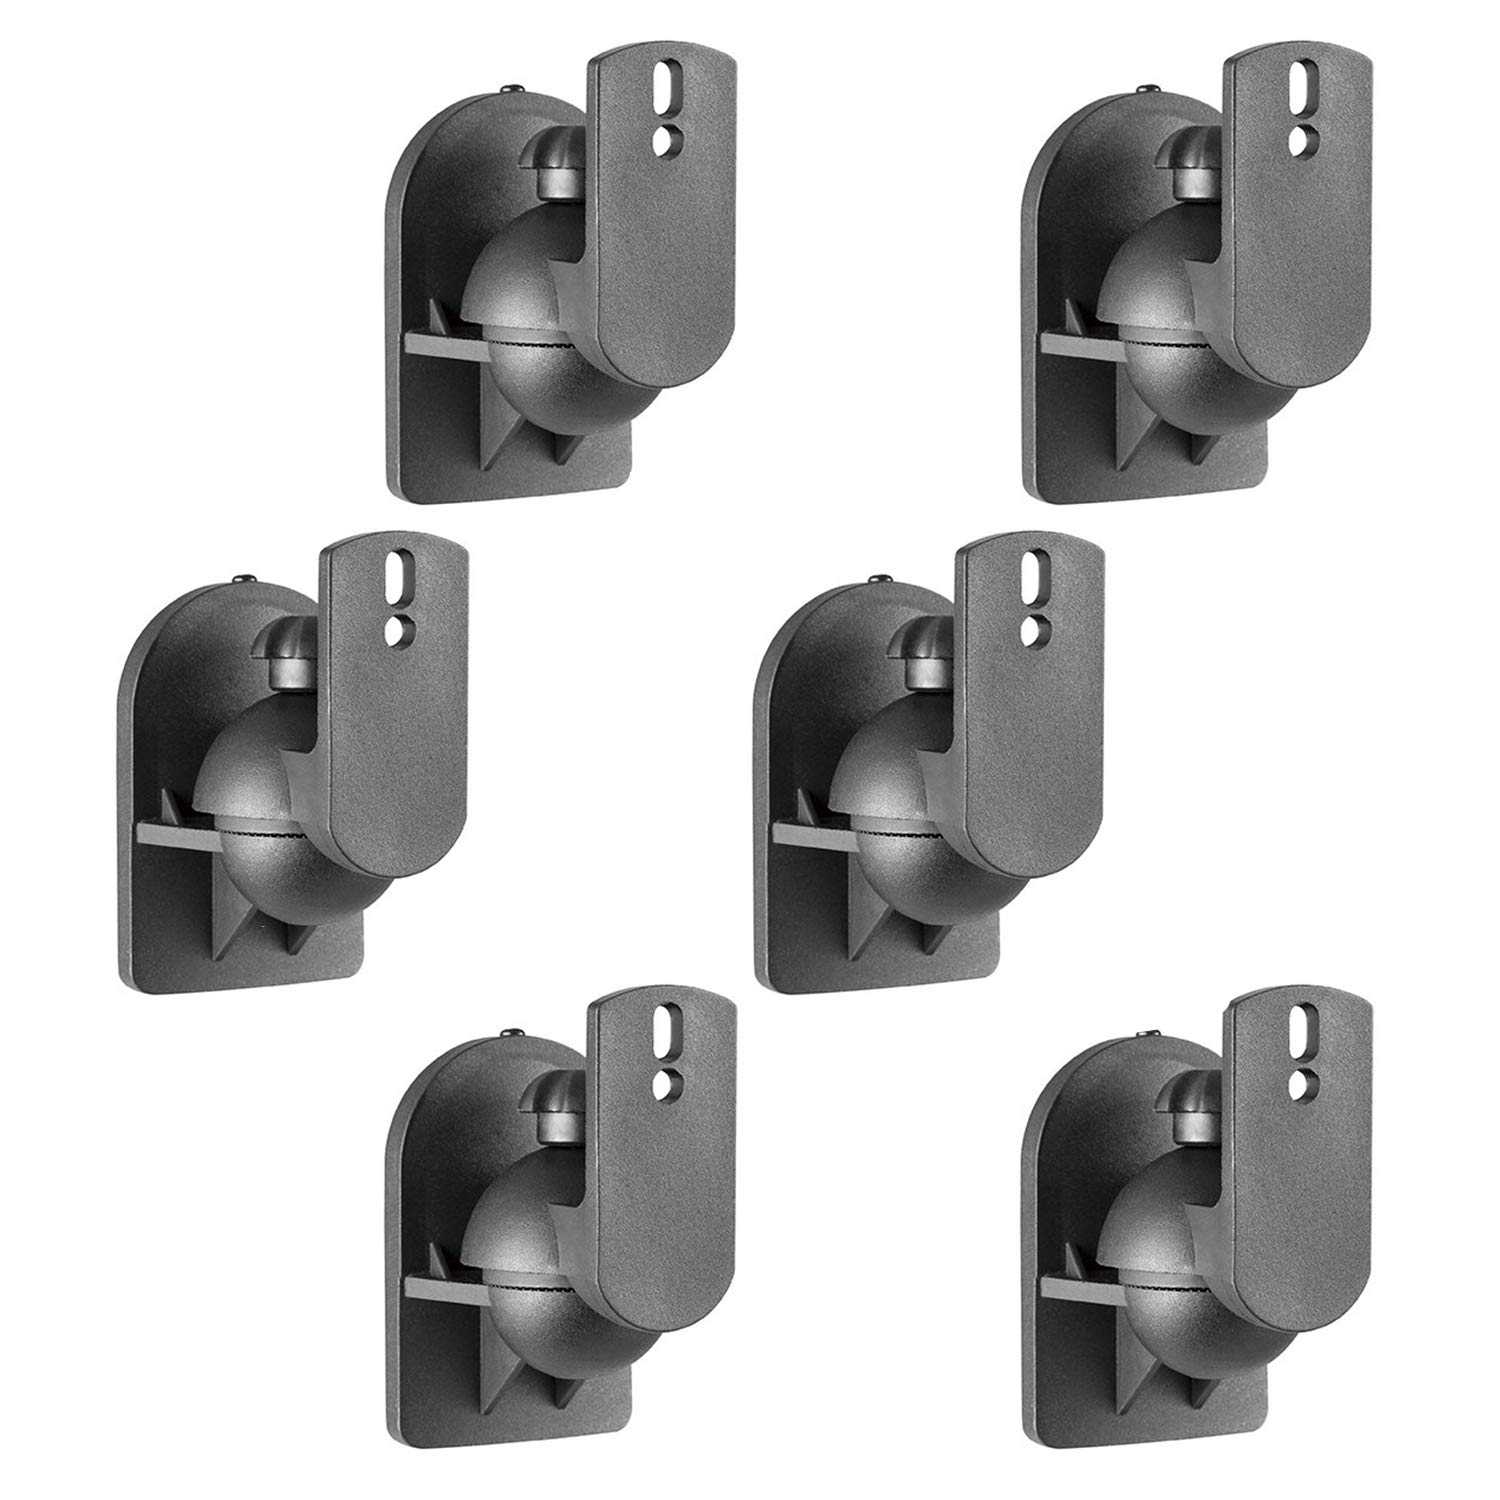 WALI Speaker Wall Mount Brackets Multiple Adjustments for Bookshelf, Surrounding Sound Speakers, Hold up to 7.7 lbs, (SWM602), 6 Packs, Black by WALI